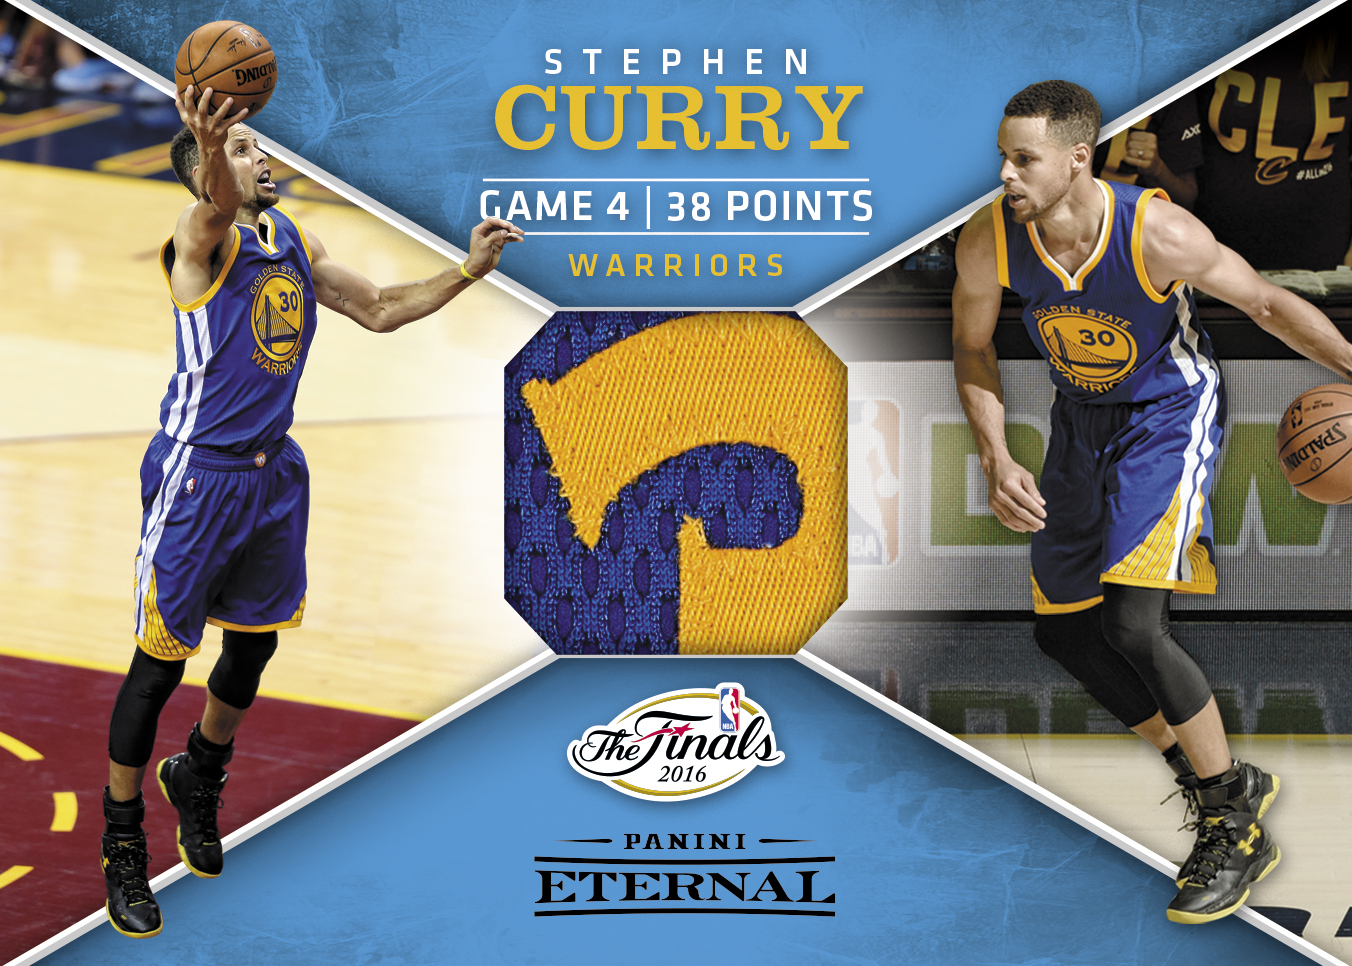 Stephen Curry Nba Finals Jersey 2016 Panini Eternal